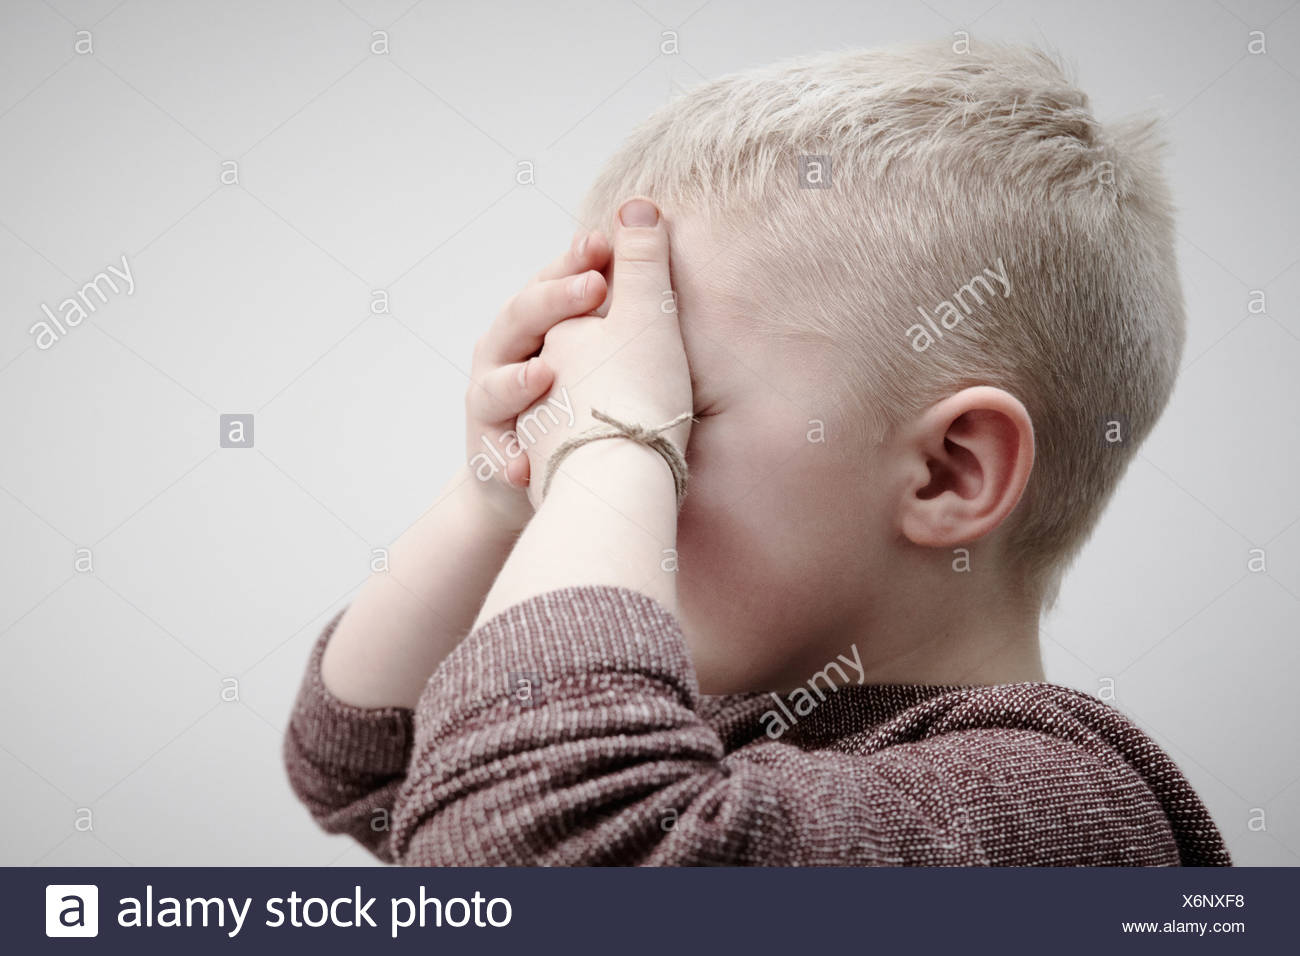 Portrait of boy wearing brown cavalier, couvrant le visage avec les mains Photo Stock